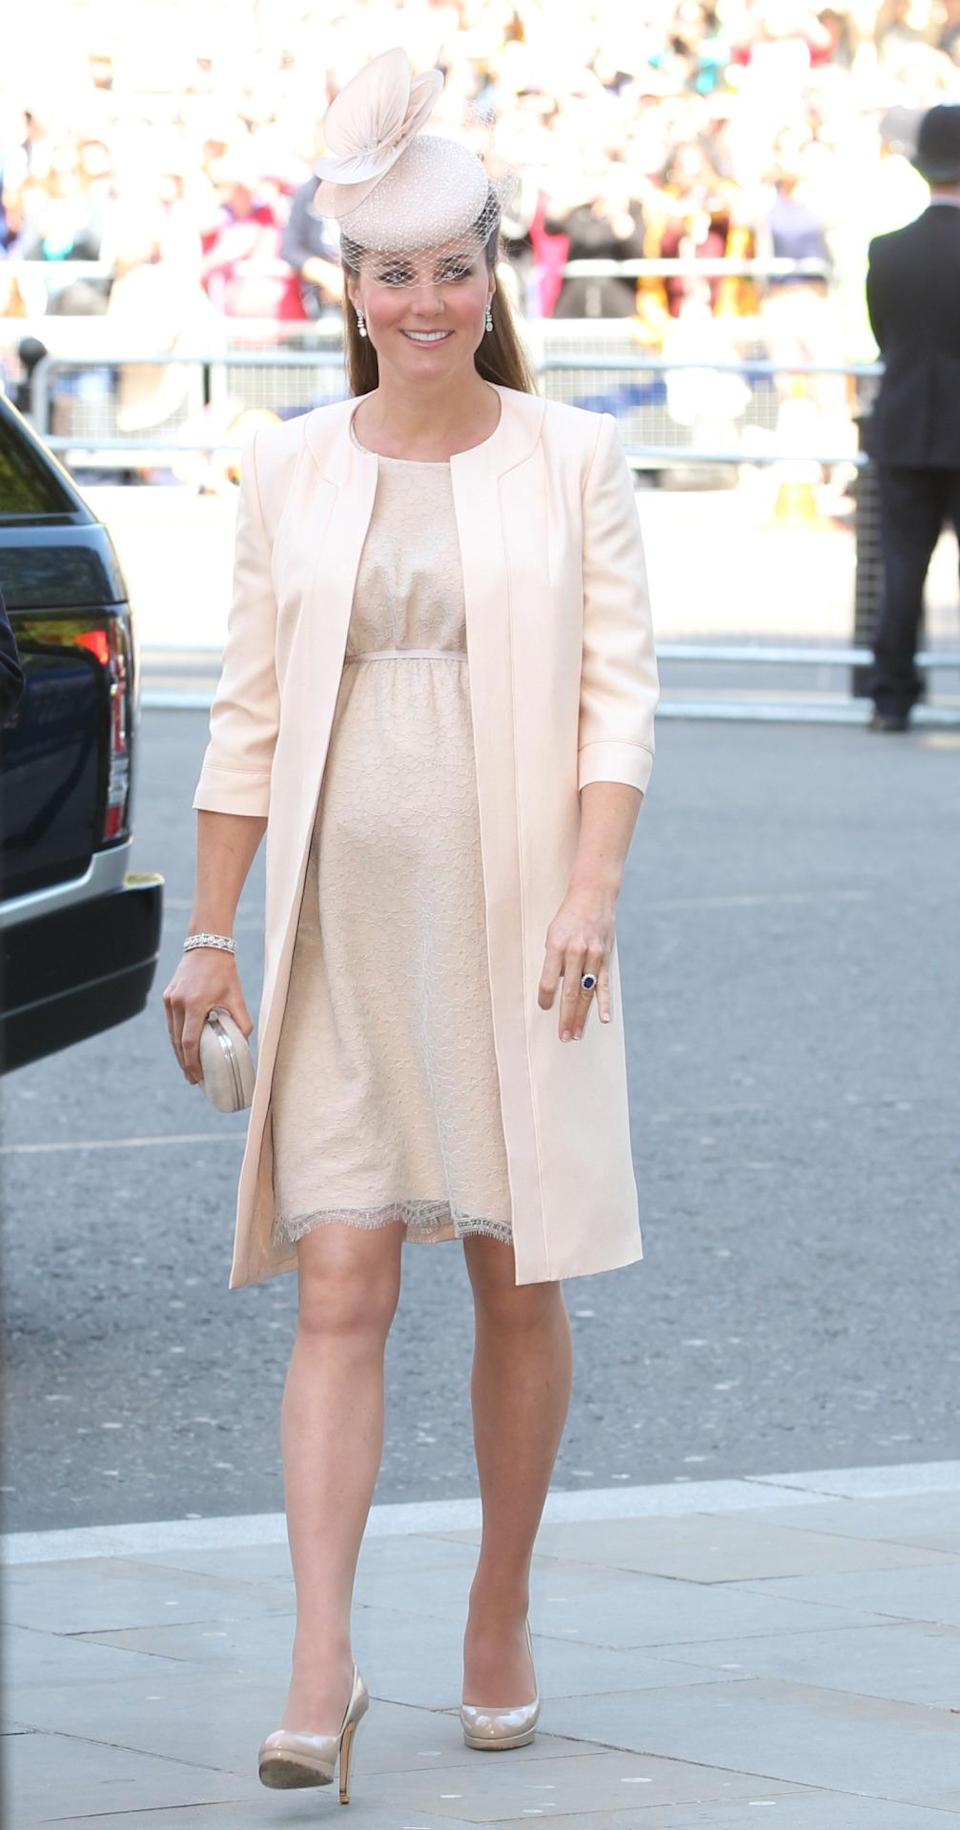 <p>The Duchess arrived at Westminster Abbey for the 60th anniversary of the Queen's coronation in a pink lace dress by her go-to event designer, Jenny Packham. She accessorised with a suede grey Alexander McQueen clutch, a netted Jane Taylor hat and nude L.K. Bennett pumps. </p><p><i>[Photo: PA]</i></p>